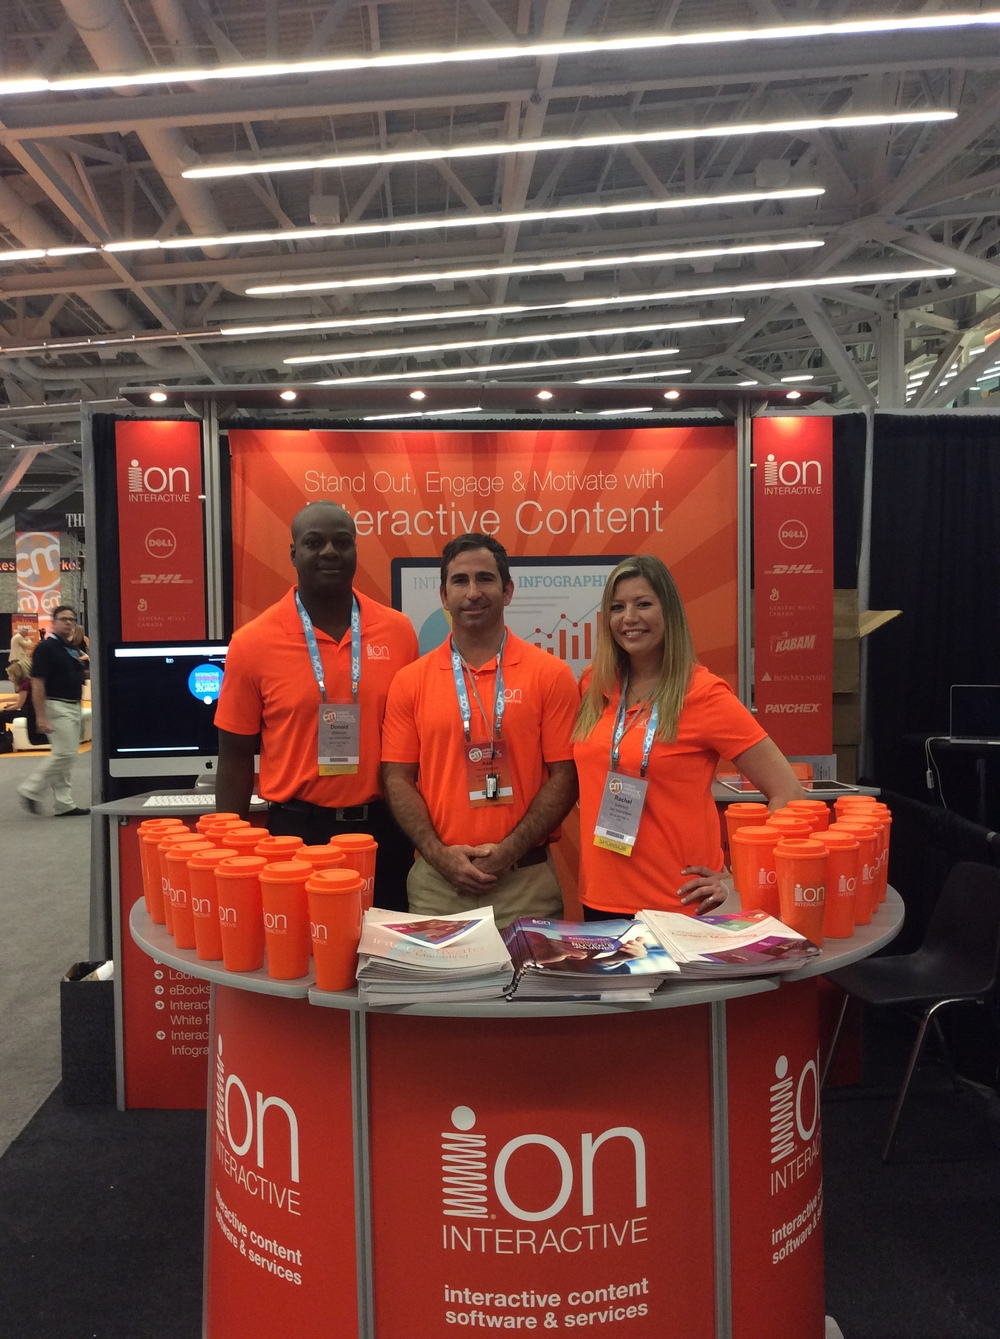 ion_CMW_booth